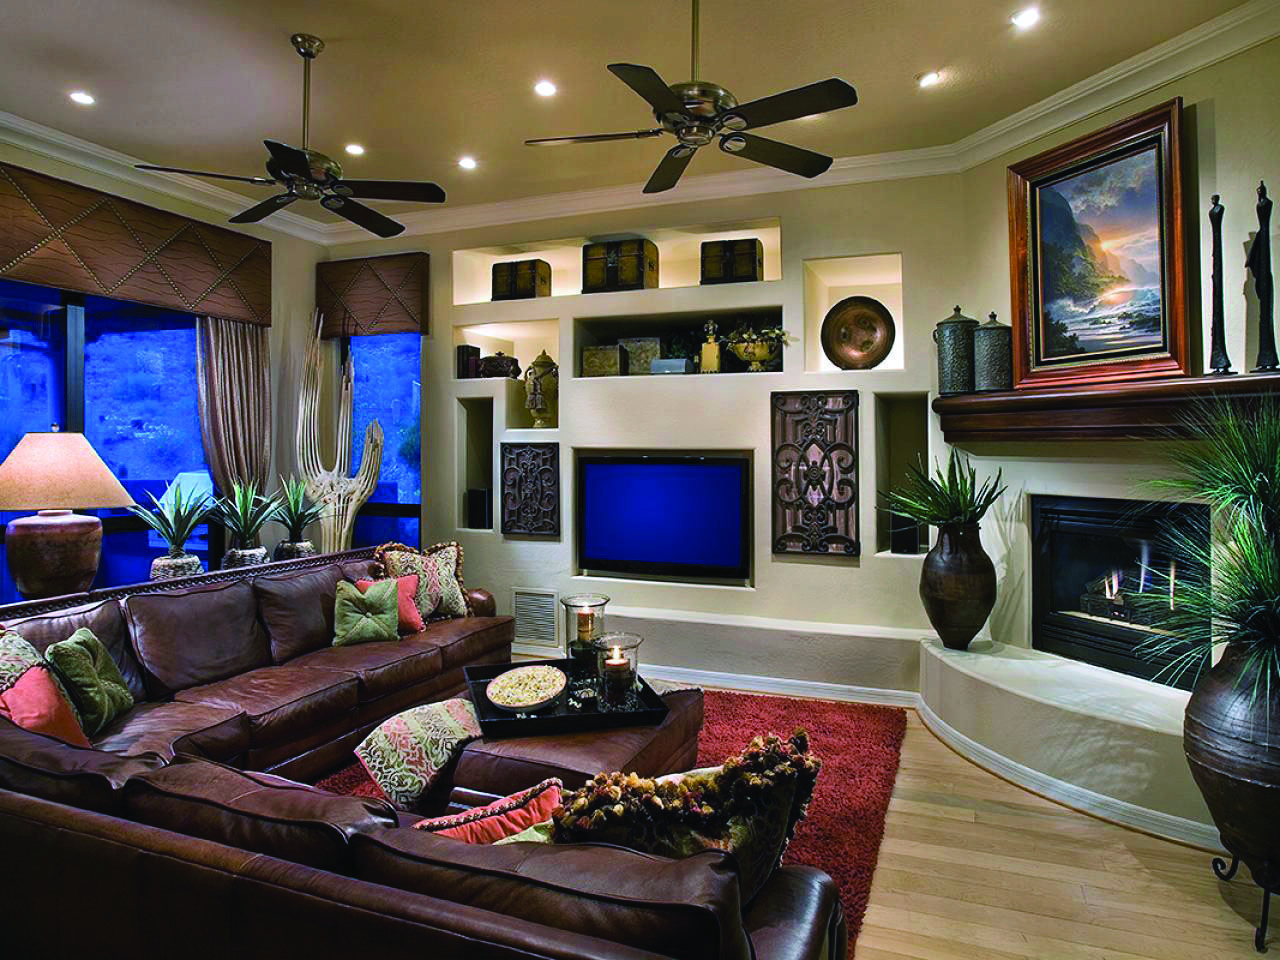 21 Standard Decorating Concepts For Traditional Living Room